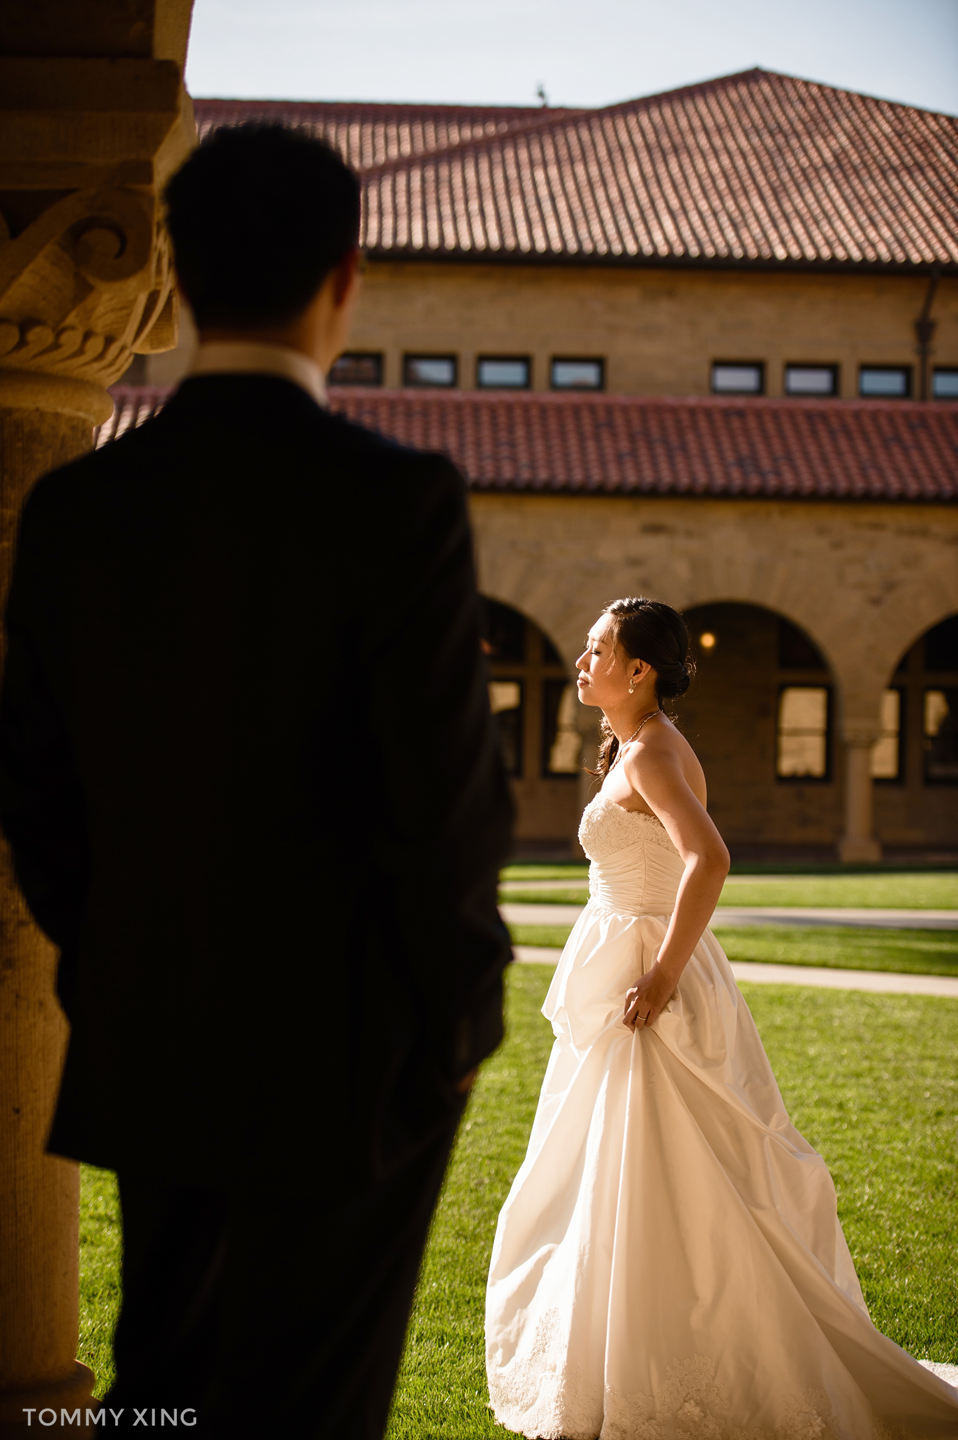 STANFORD MEMORIAL CHURCH WEDDING SAN FRANCISCO BAY AREA 斯坦福教堂婚礼 洛杉矶婚礼婚纱摄影师  Tommy Xing 70.jpg